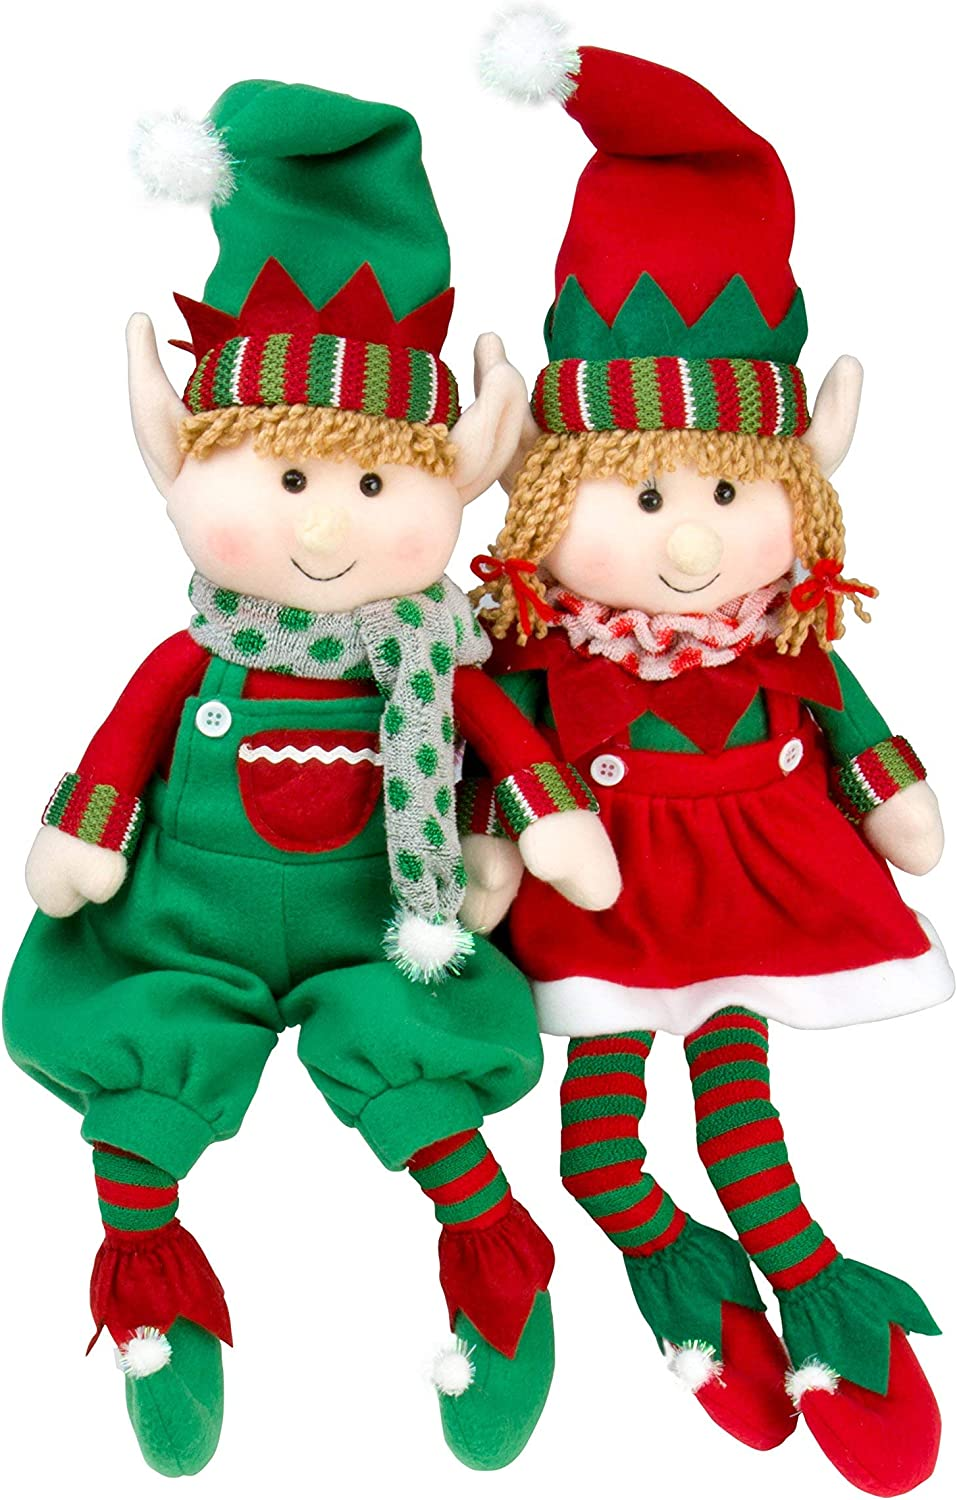 """SCS Direct Elf Plush Christmas Stuffed Toys- 12"""" Boy and Girl Elves (Set of 2) Holiday Plush Characters - Fun Decorations and Toys for Kids"""